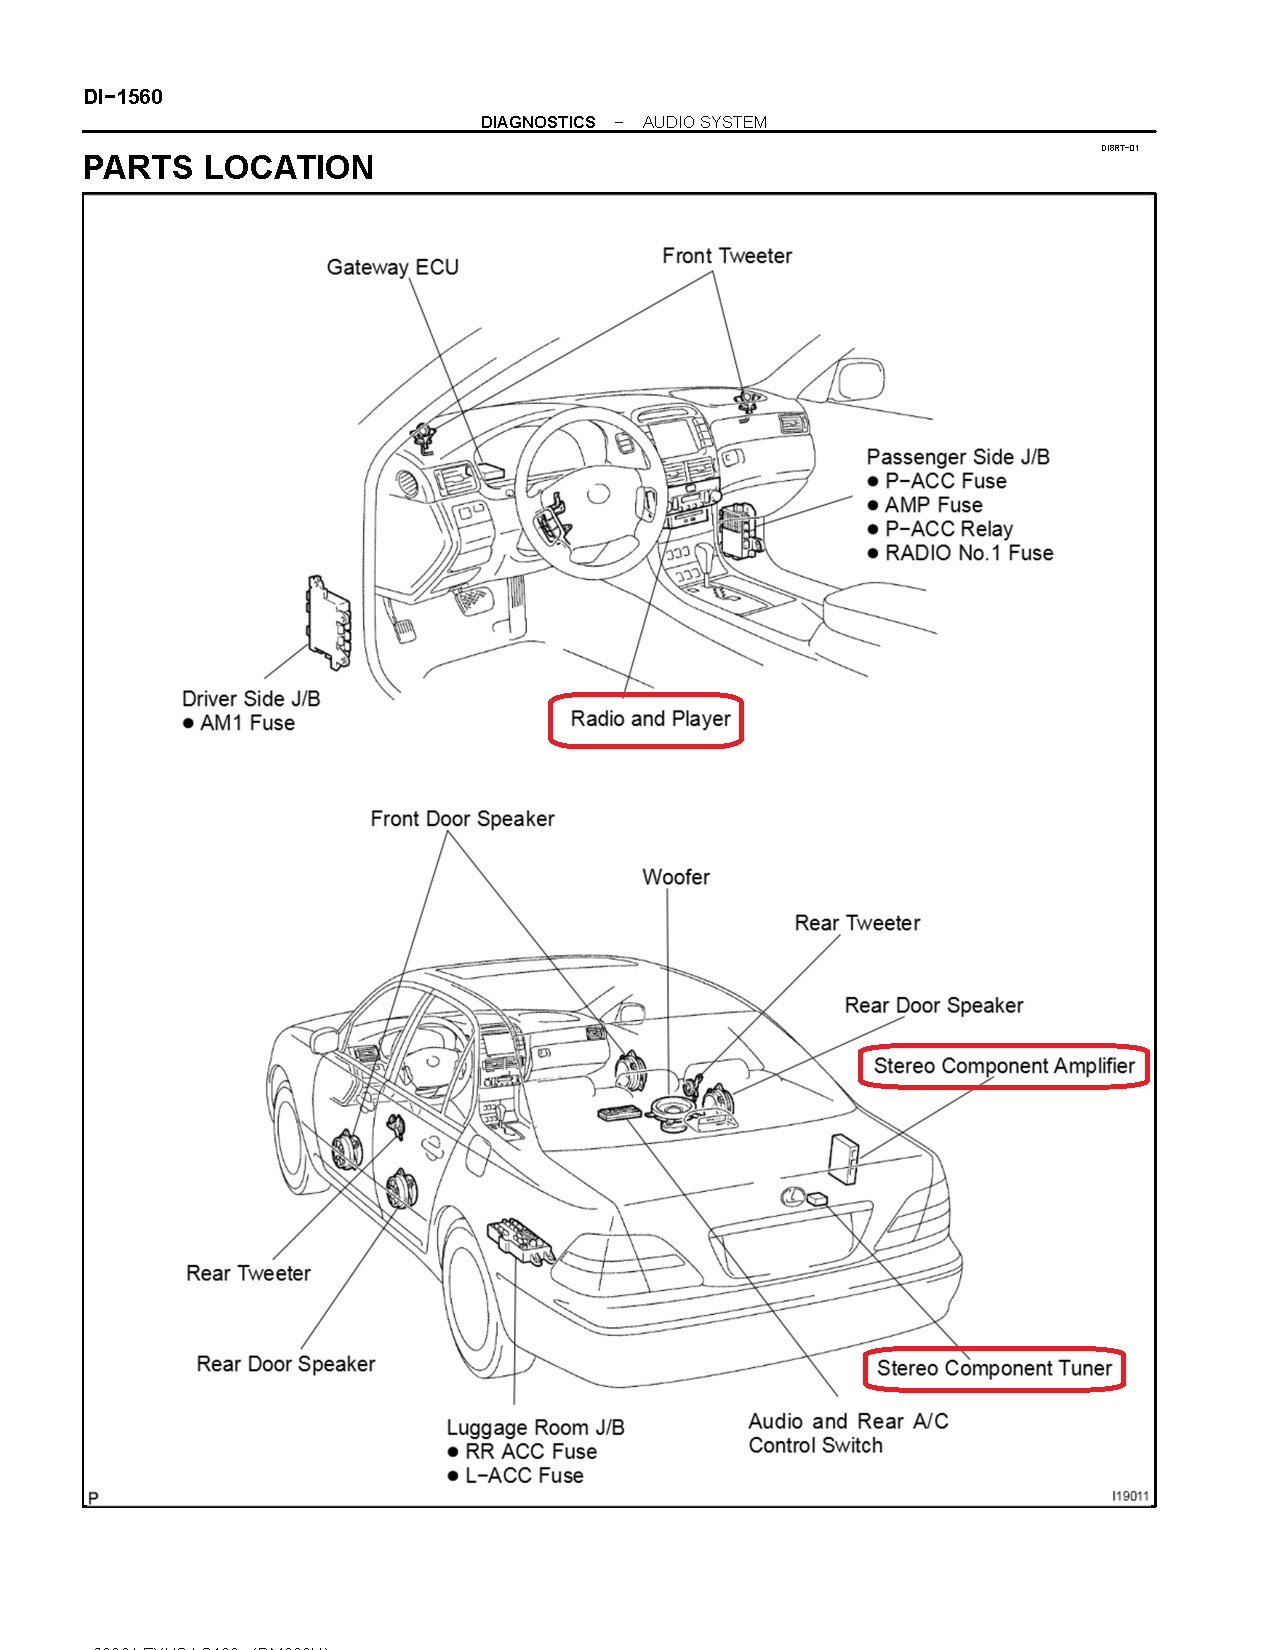 2002 ls430 radio wiring diagram please clublexus lexus forum 2002 Lexus  SC430 Interior the antenna cable